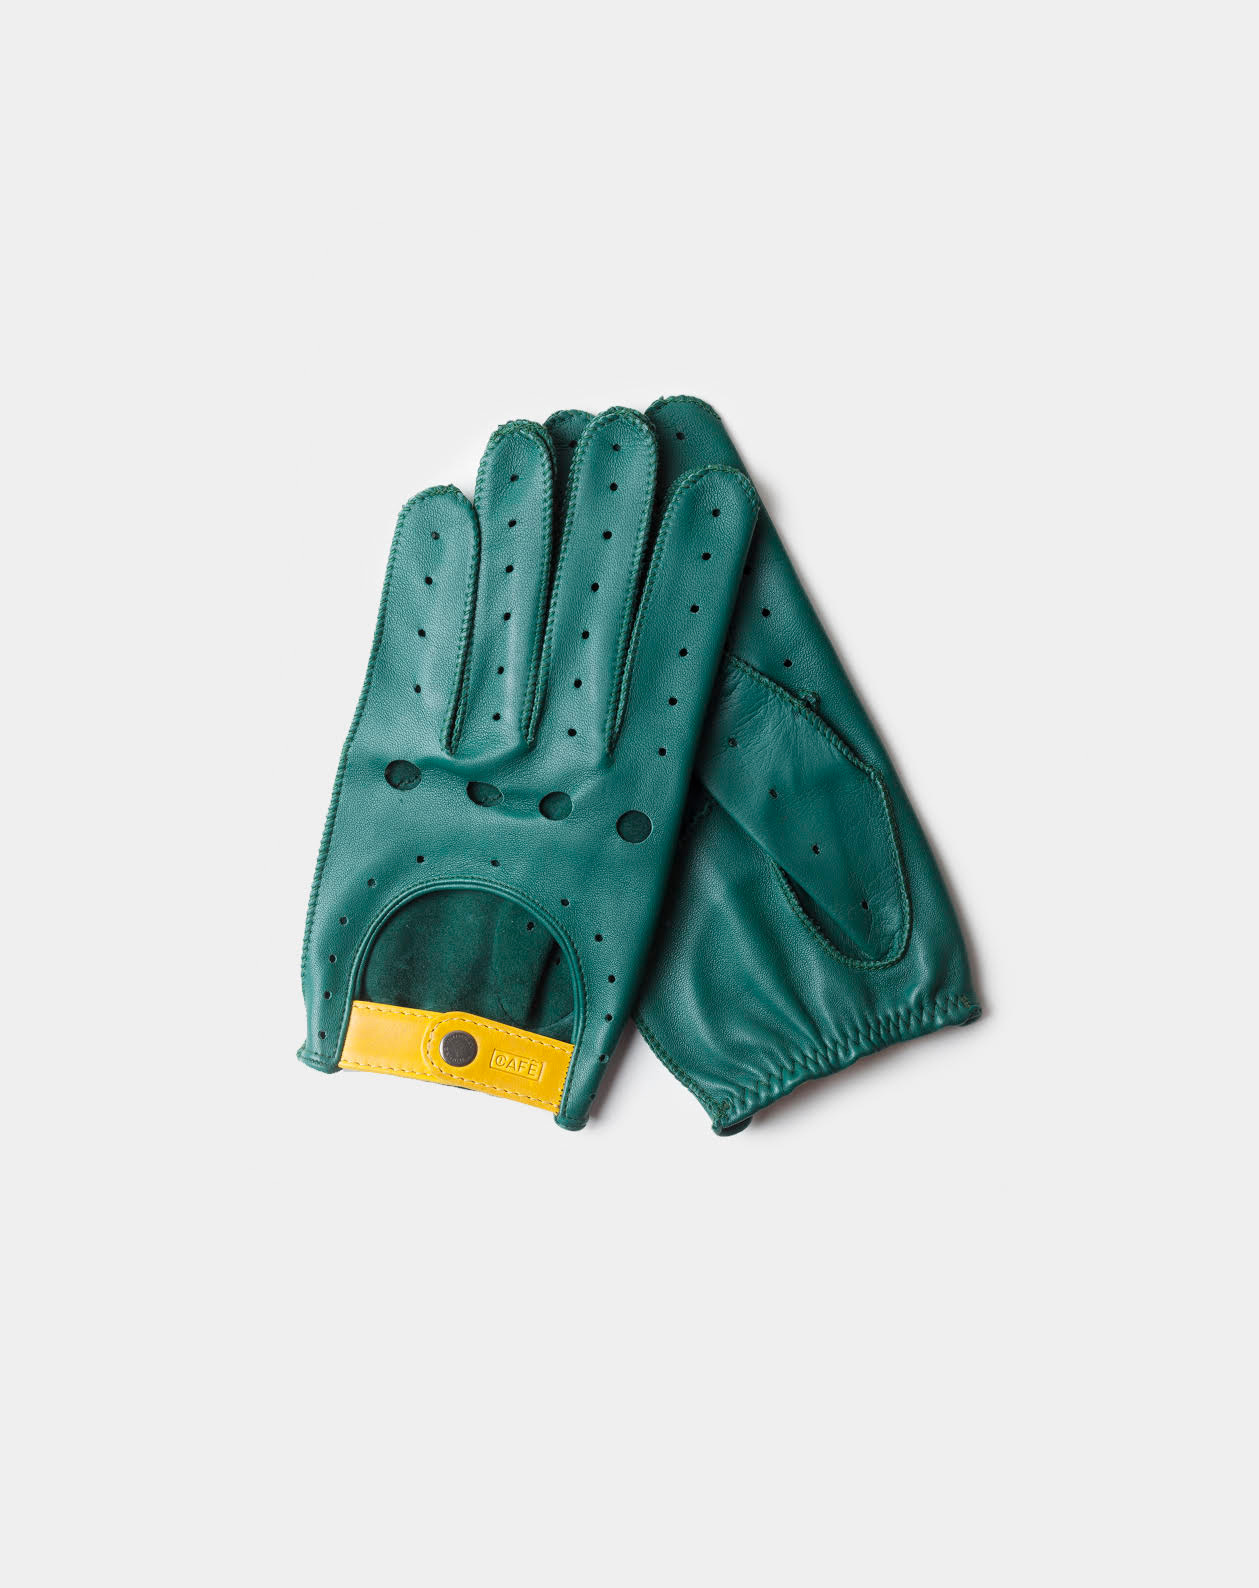 driving gloves green handcrafted in Spain